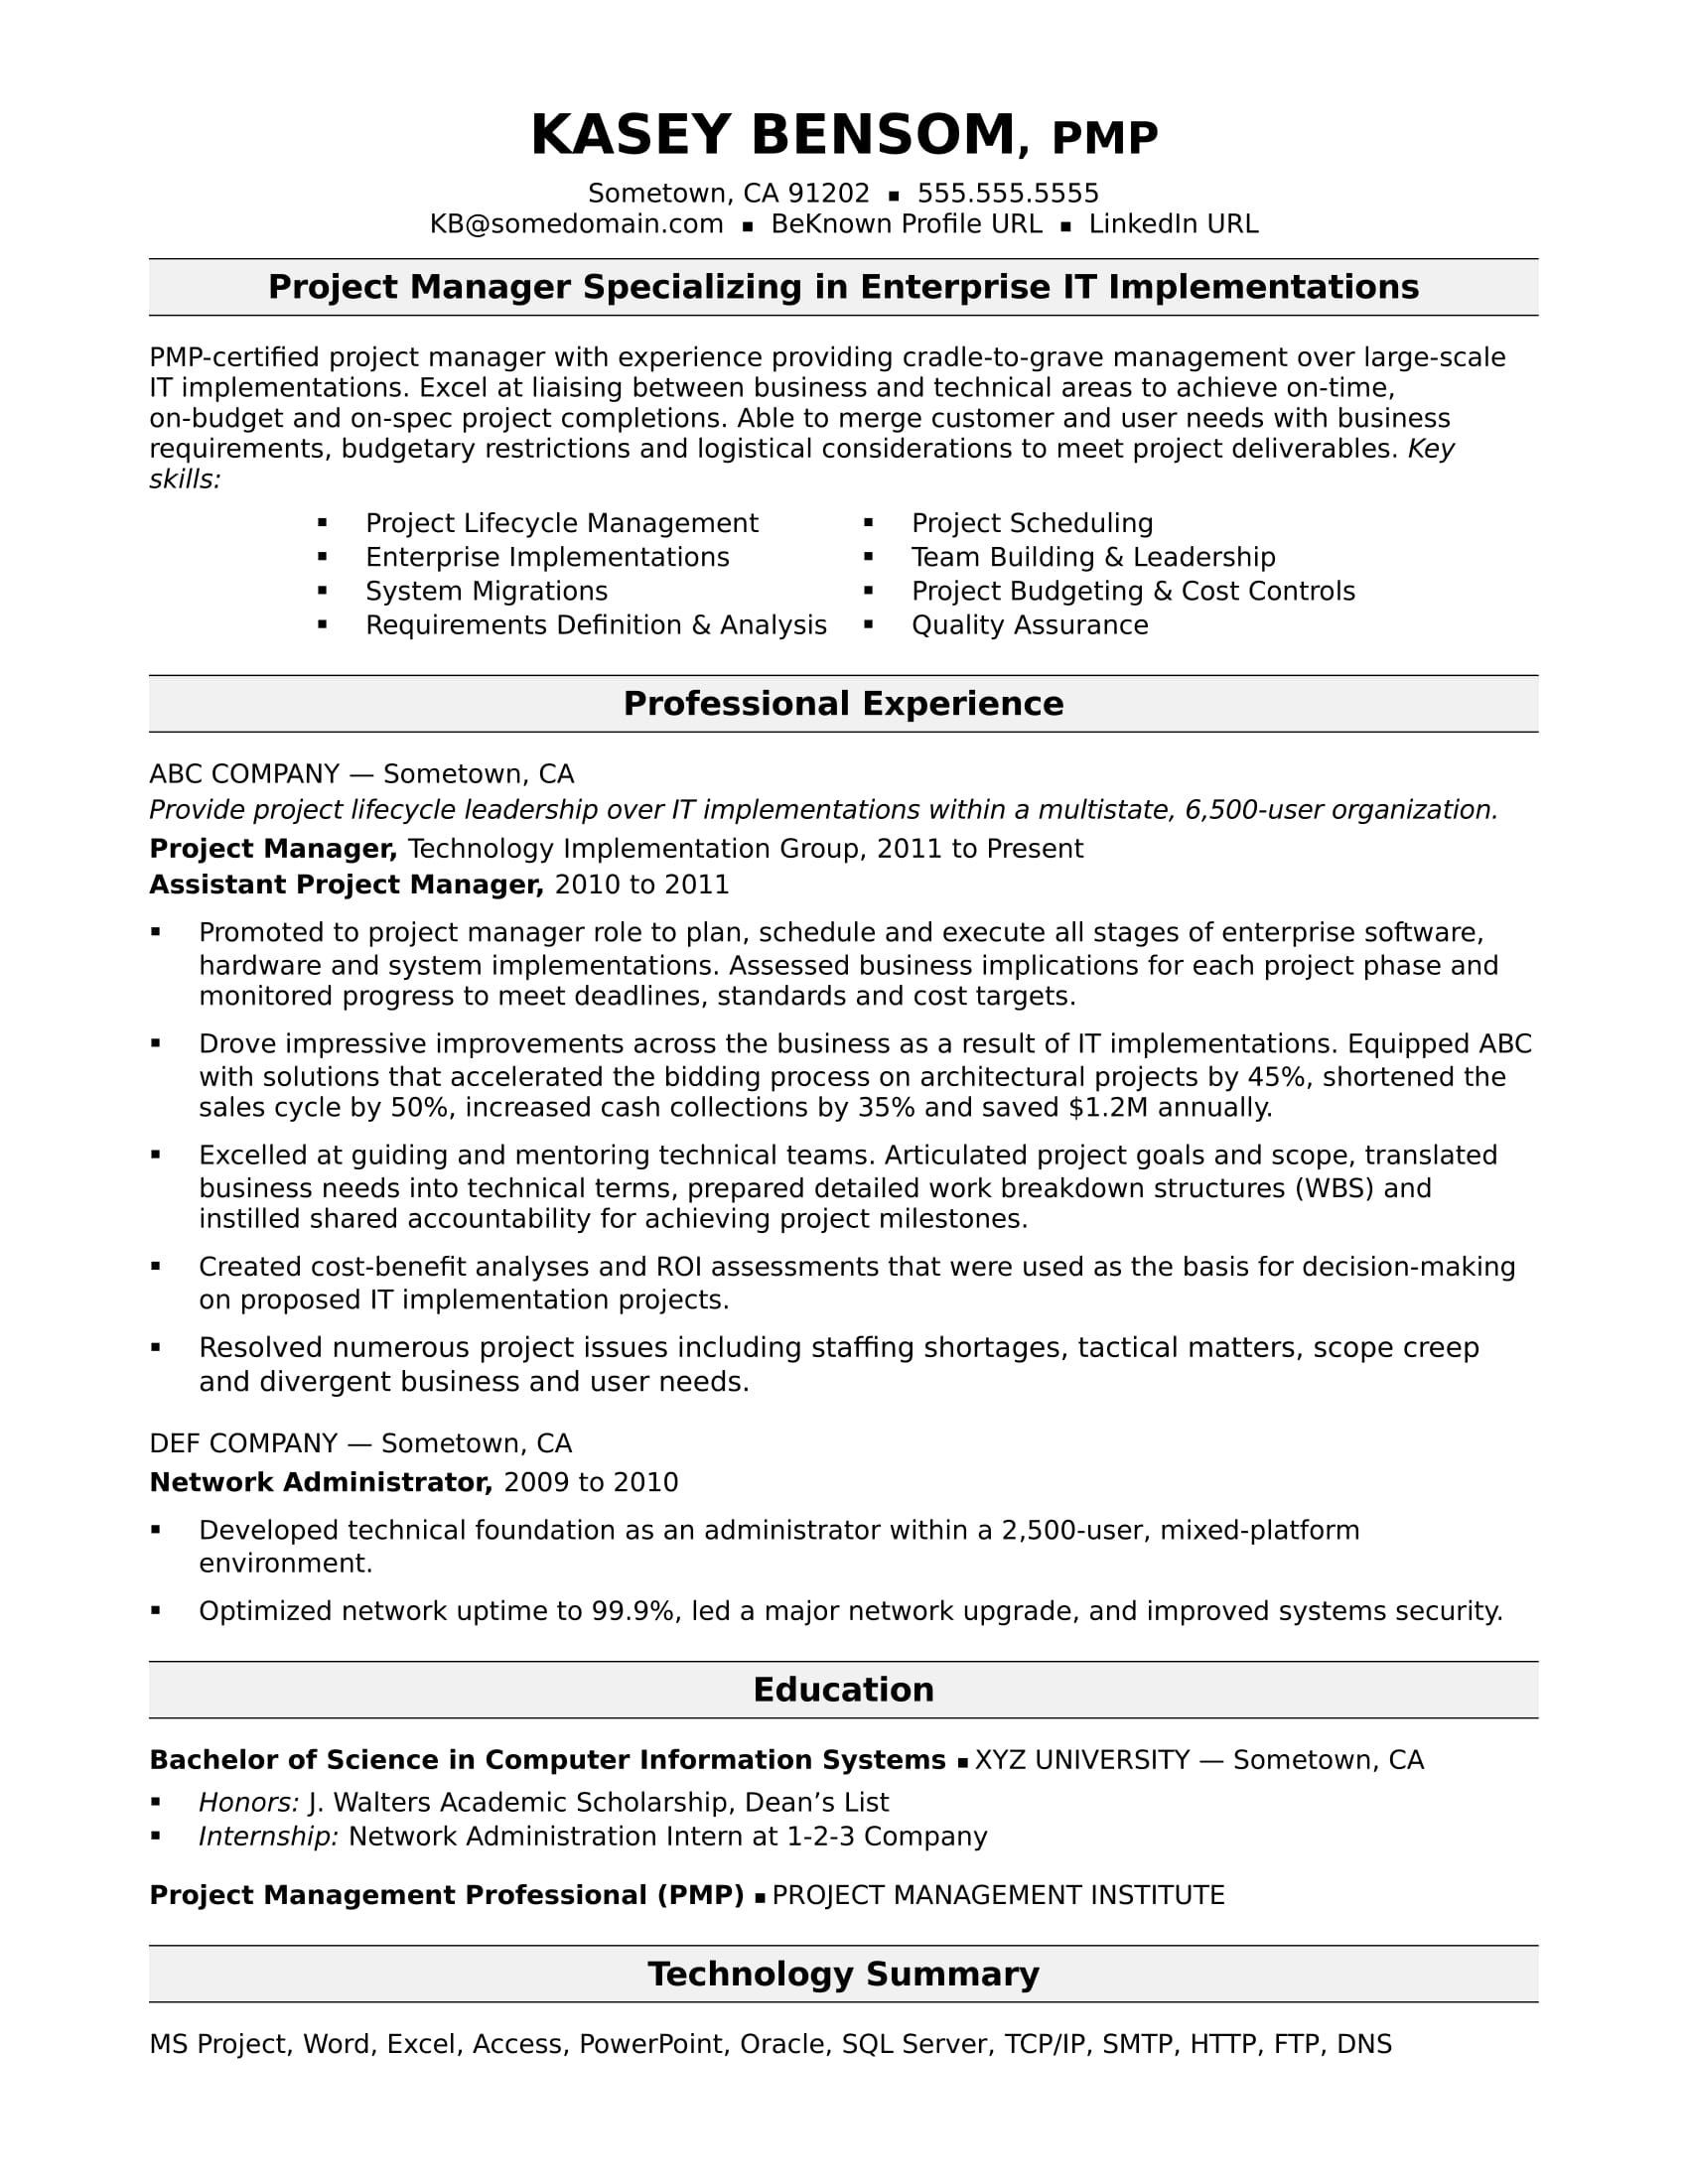 Midlevel project manager cvresume example project